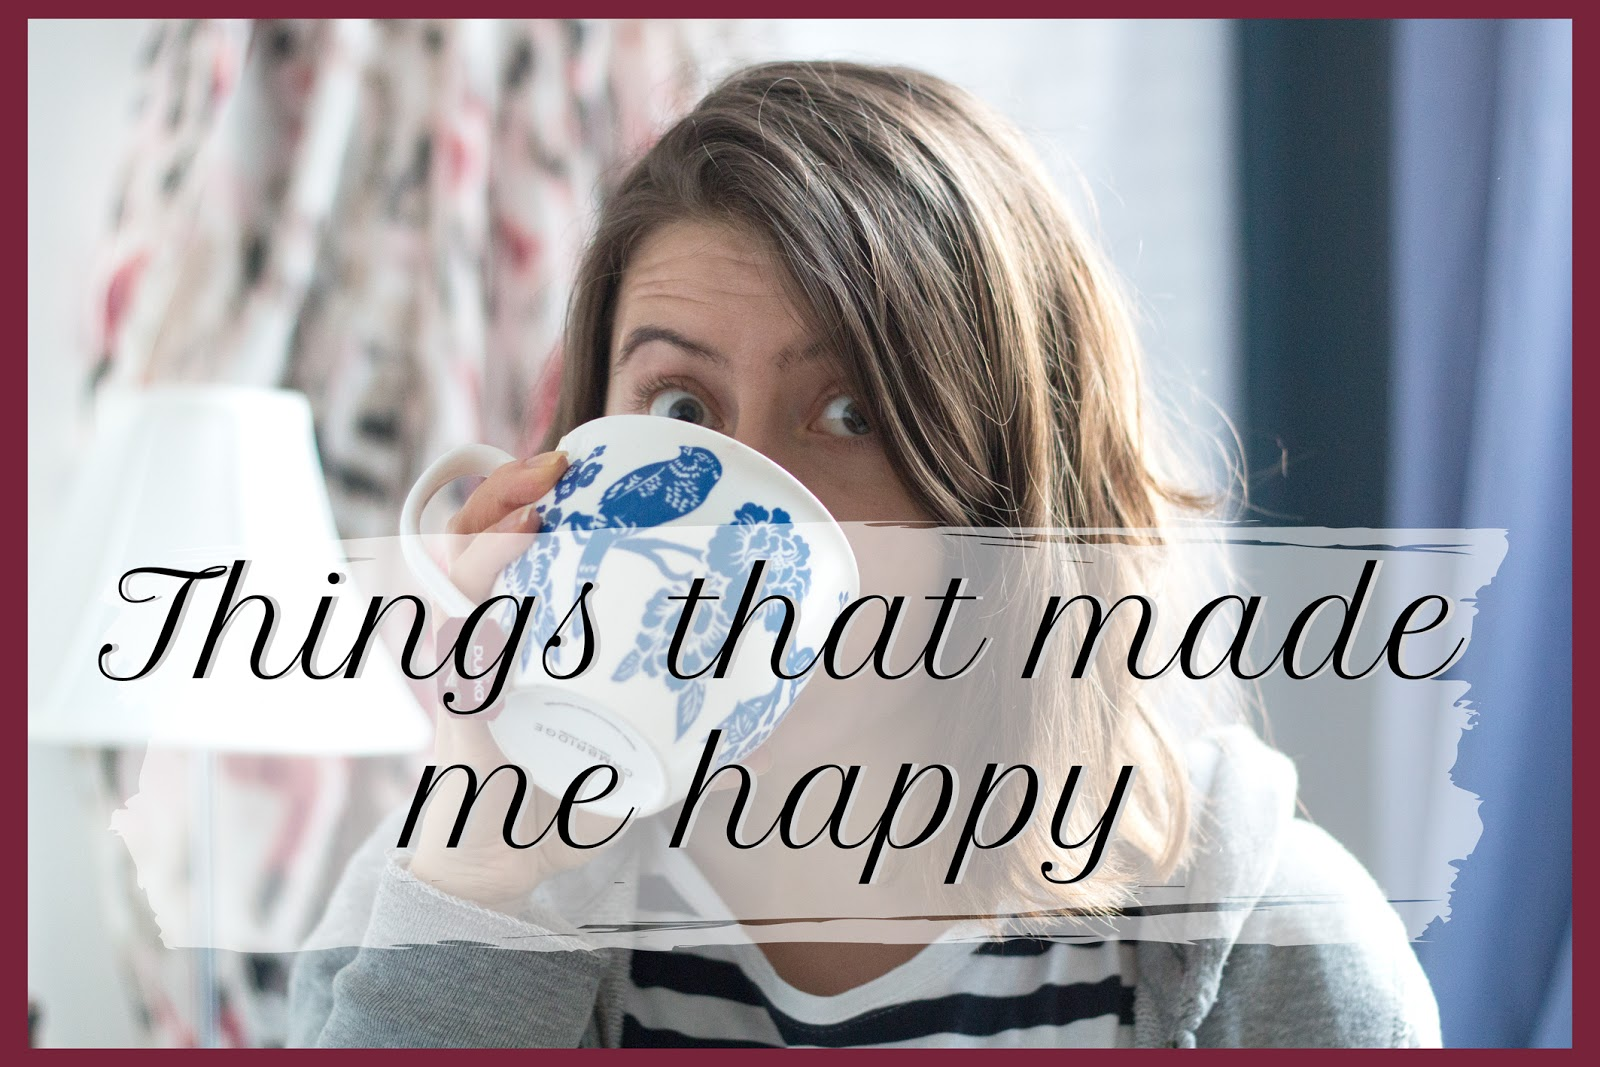 THE VIDEO: THINGS THAT MAKE ME HAPPY